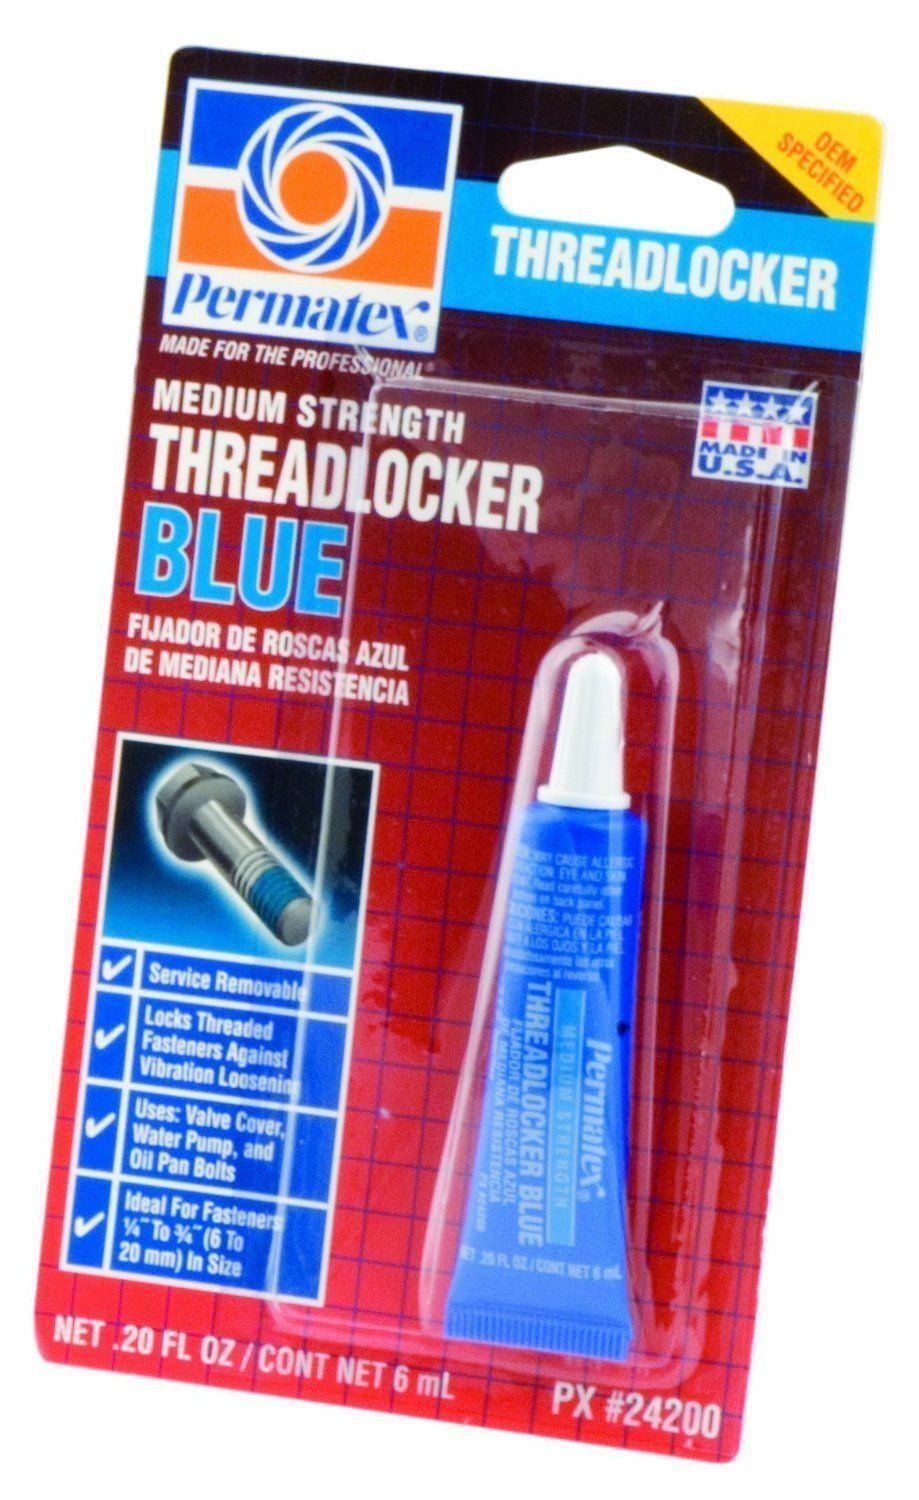 Cheap bathroom vanities under 24200 - Threadlocker Blue Permatex 24200